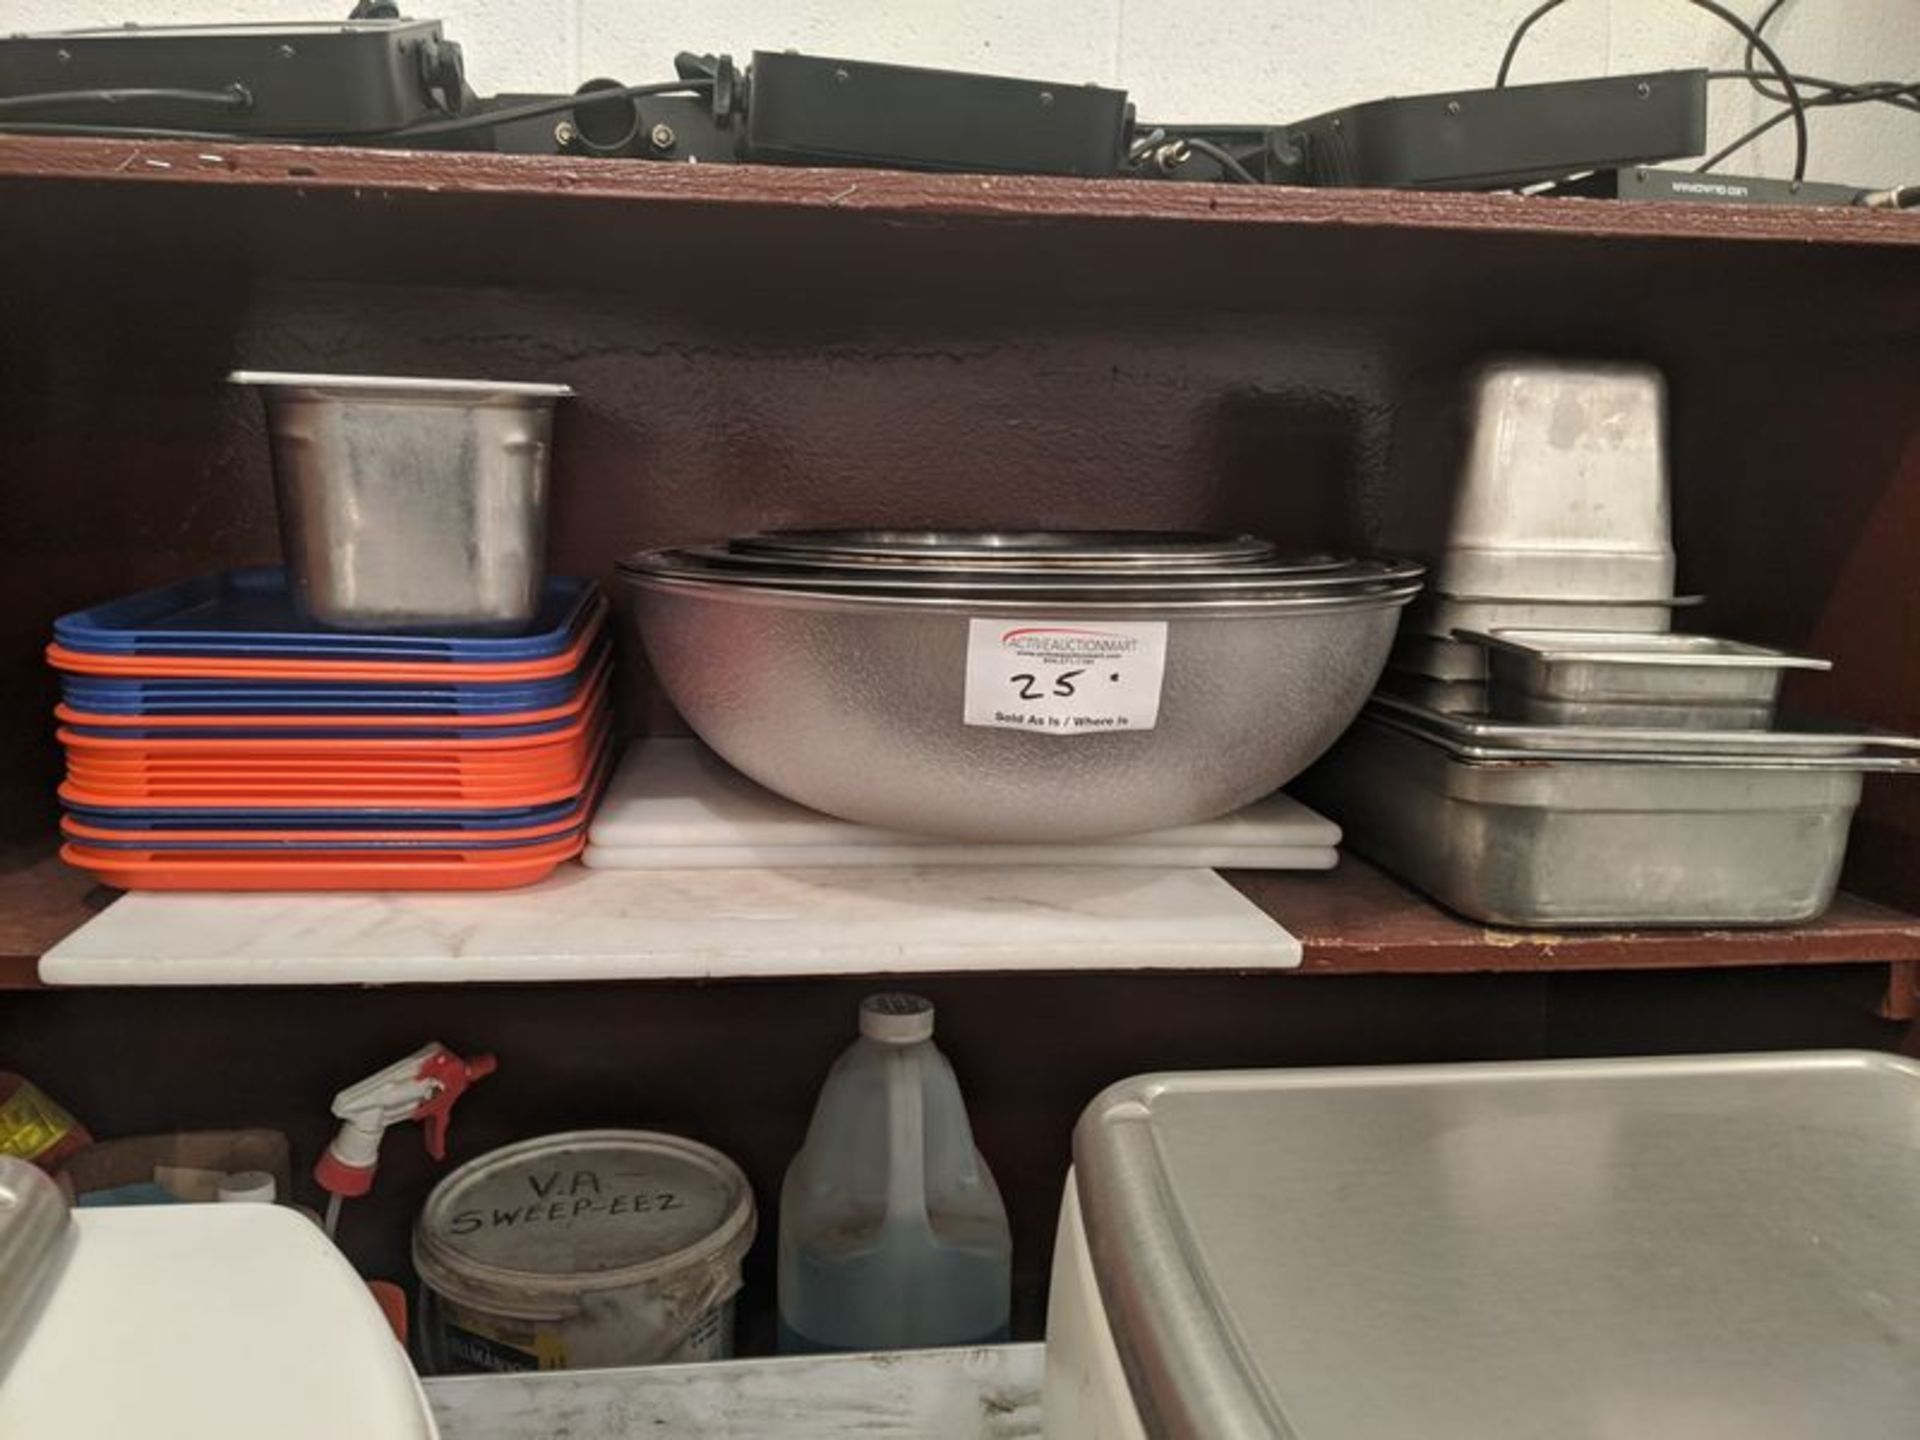 Lot 25 - Shelf of Misc. Pots, Bowls, Inserts, Cutting Boards